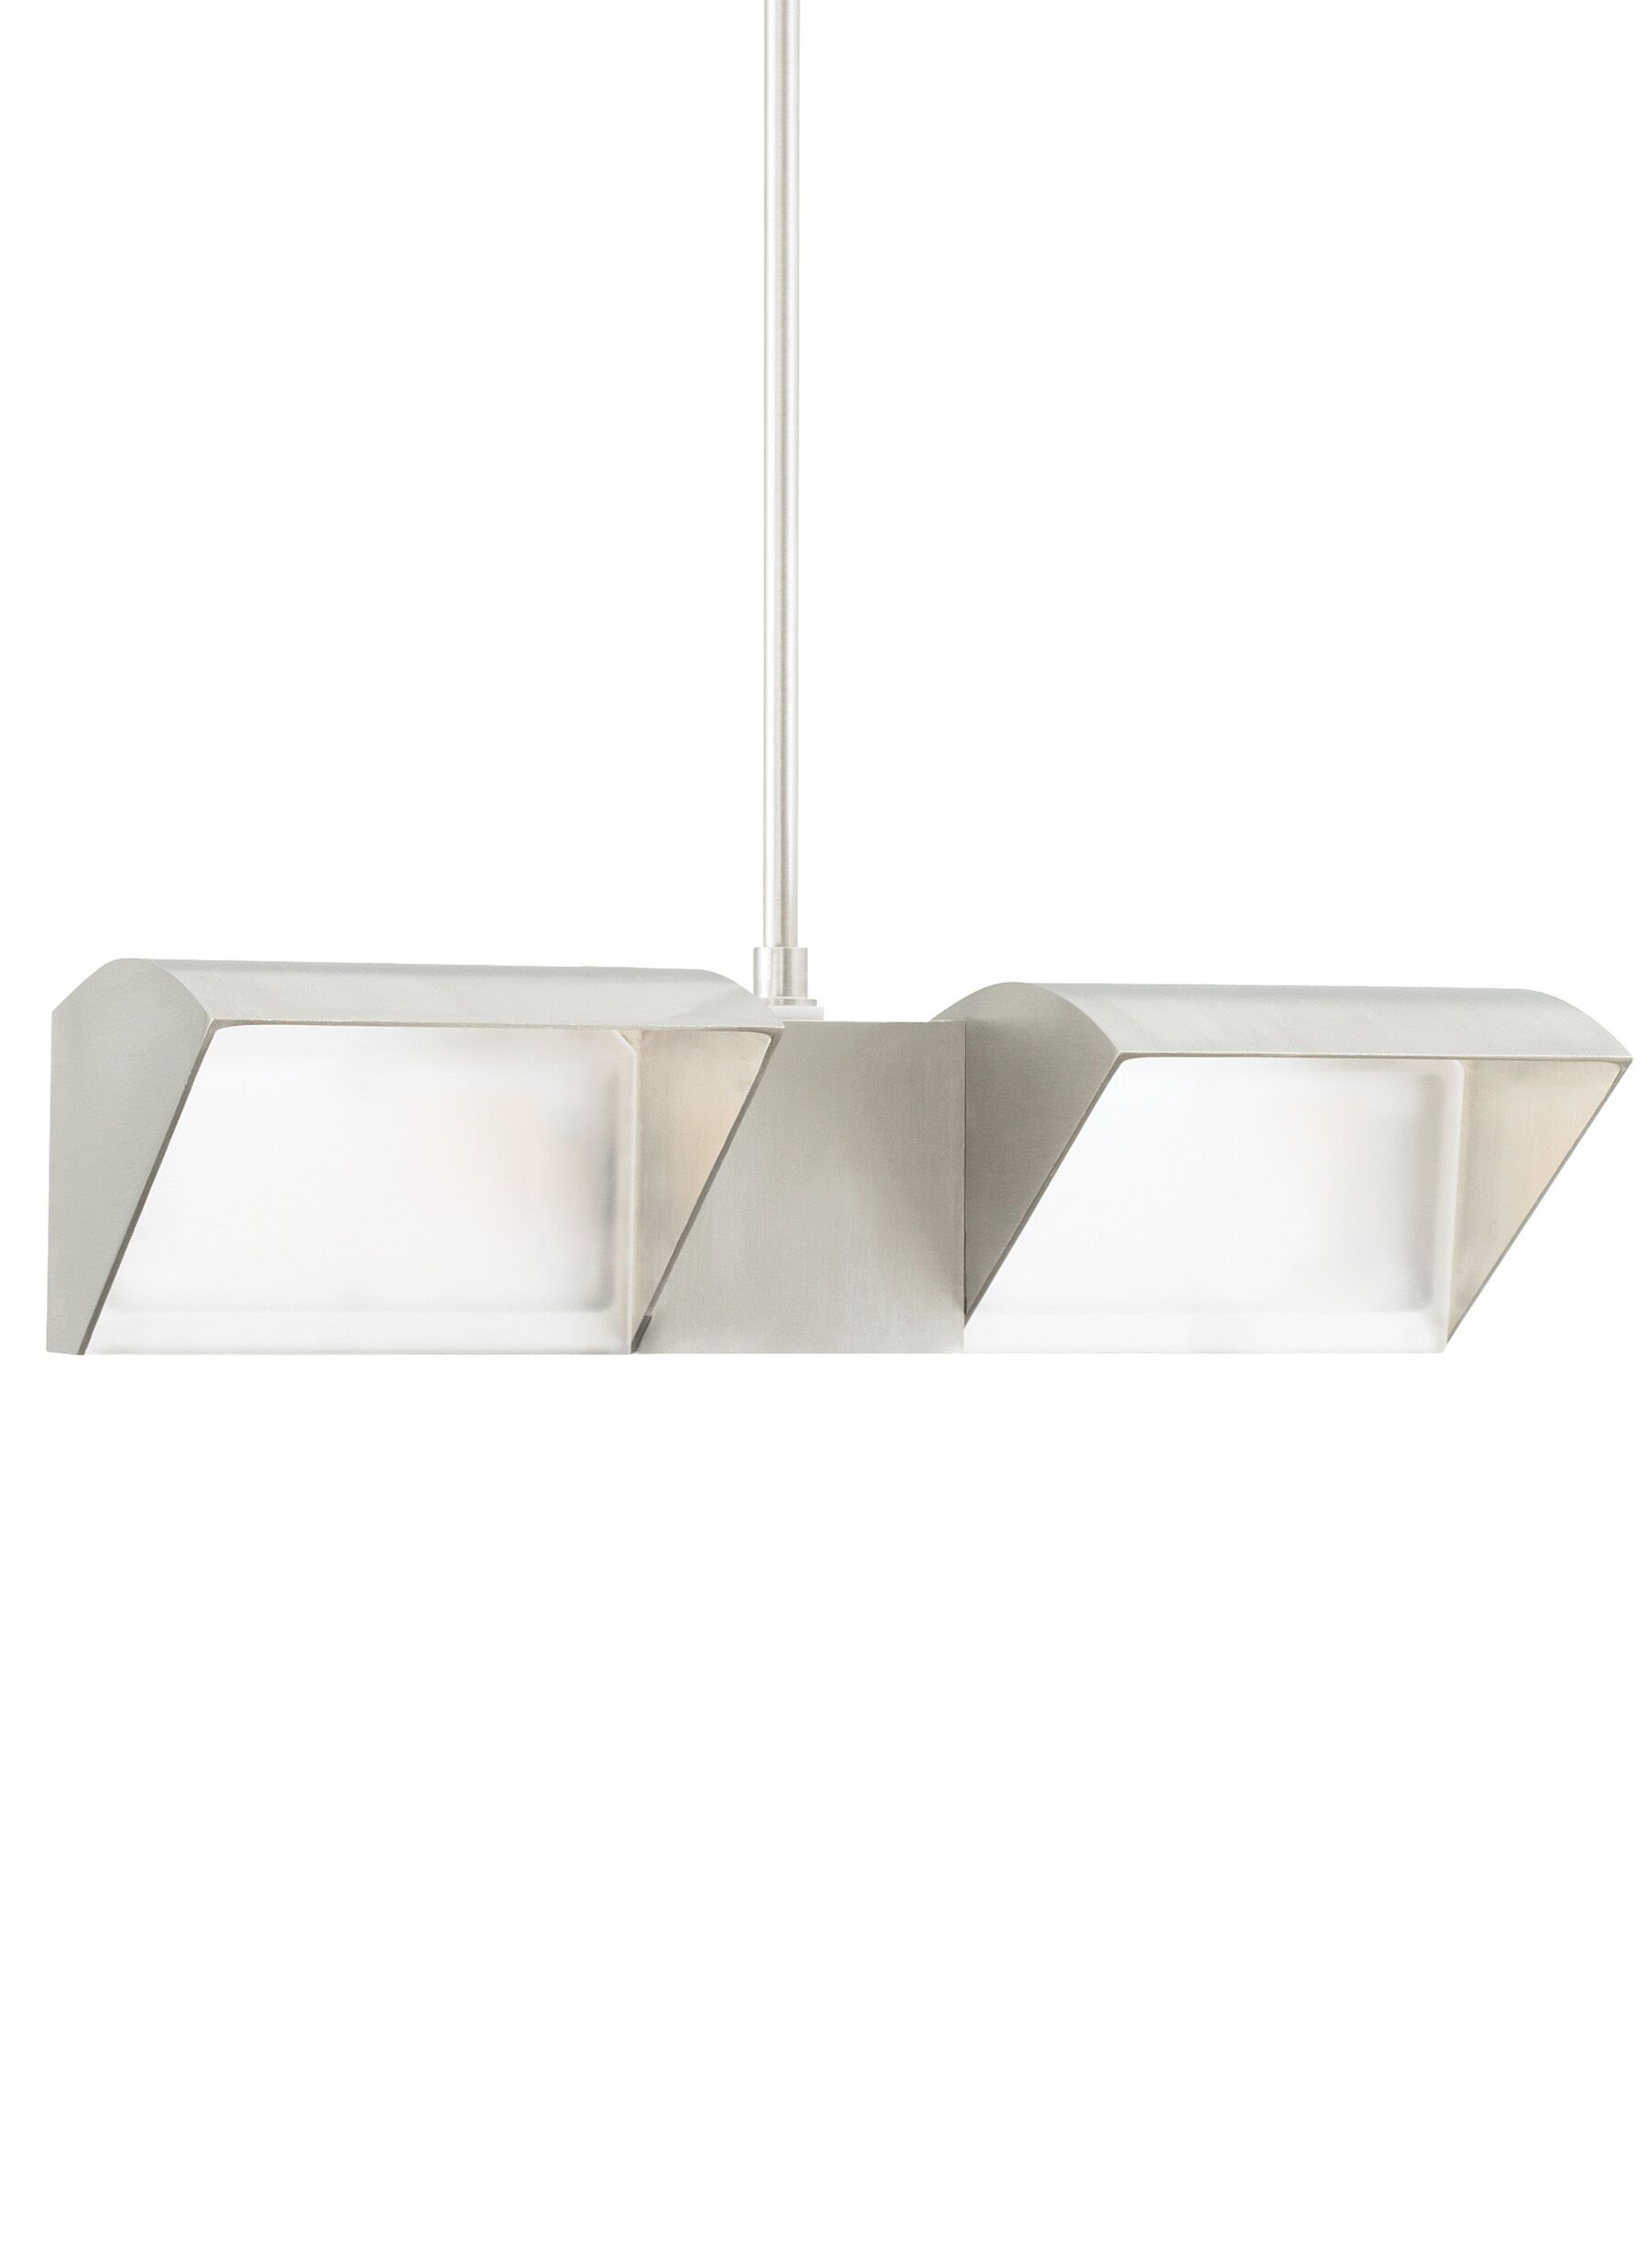 IBISS 2-Light Geometric Pendant Finish: Satin Nickel, Bulb Color Temperature: 2700K, Size: 18